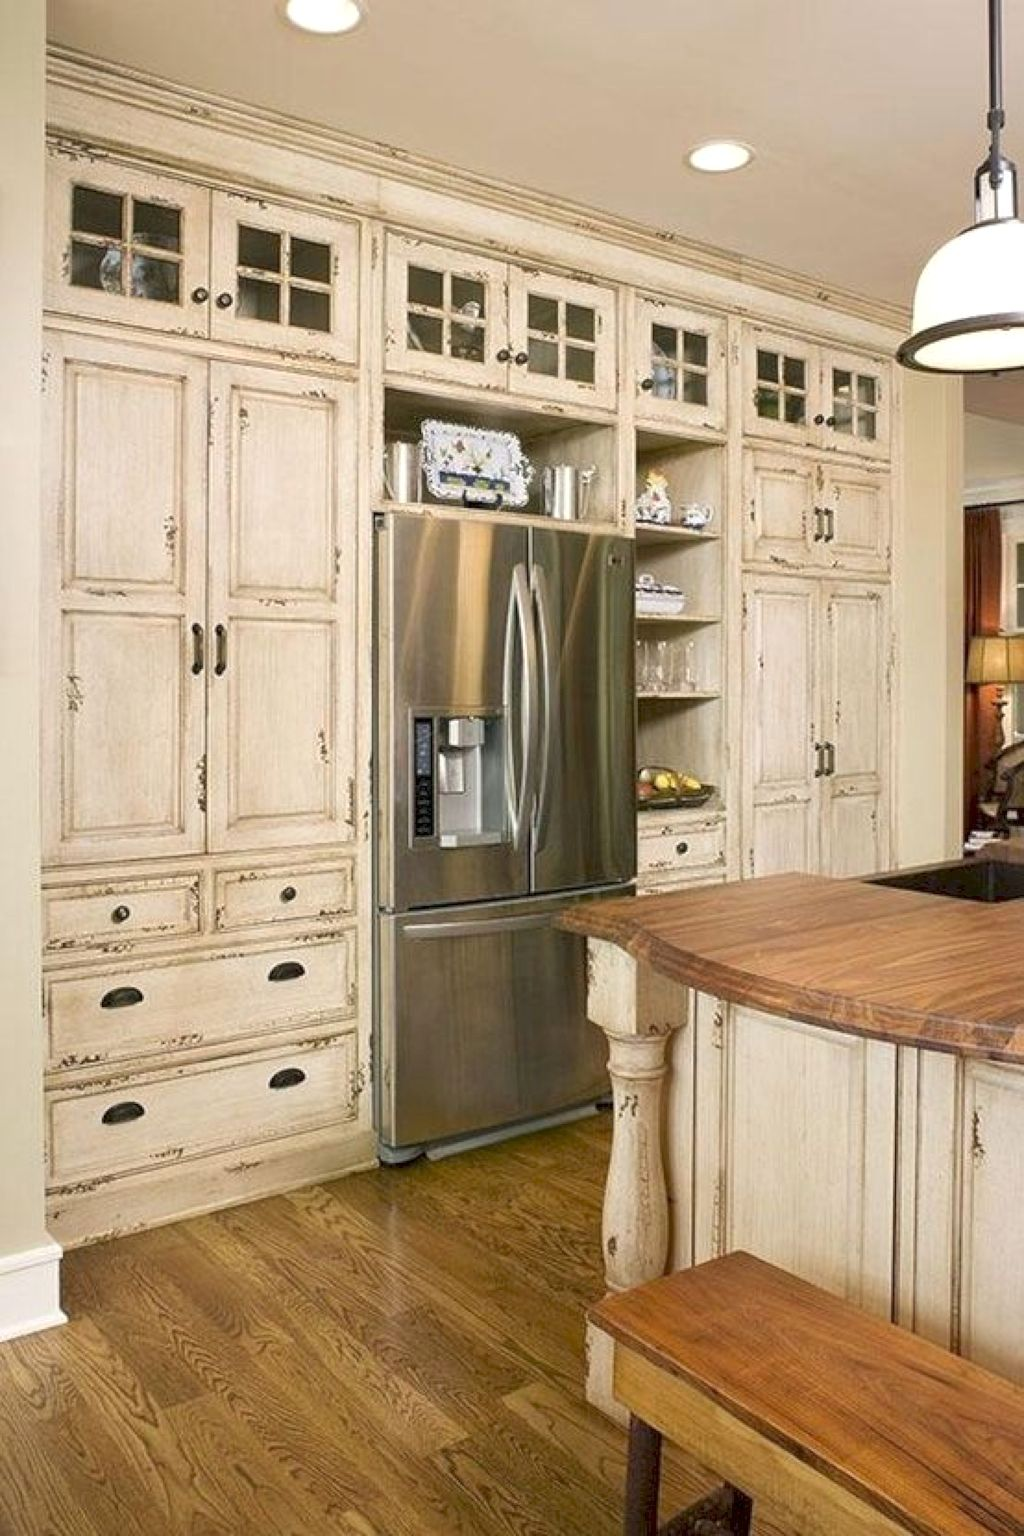 Farmhouse Kitchens Easy Farmhouse Kitchen Project Designs For Your Kitchen Rustic Far Farm Style Kitchen Farmhouse Kitchen Design Modern Farmhouse Kitchens